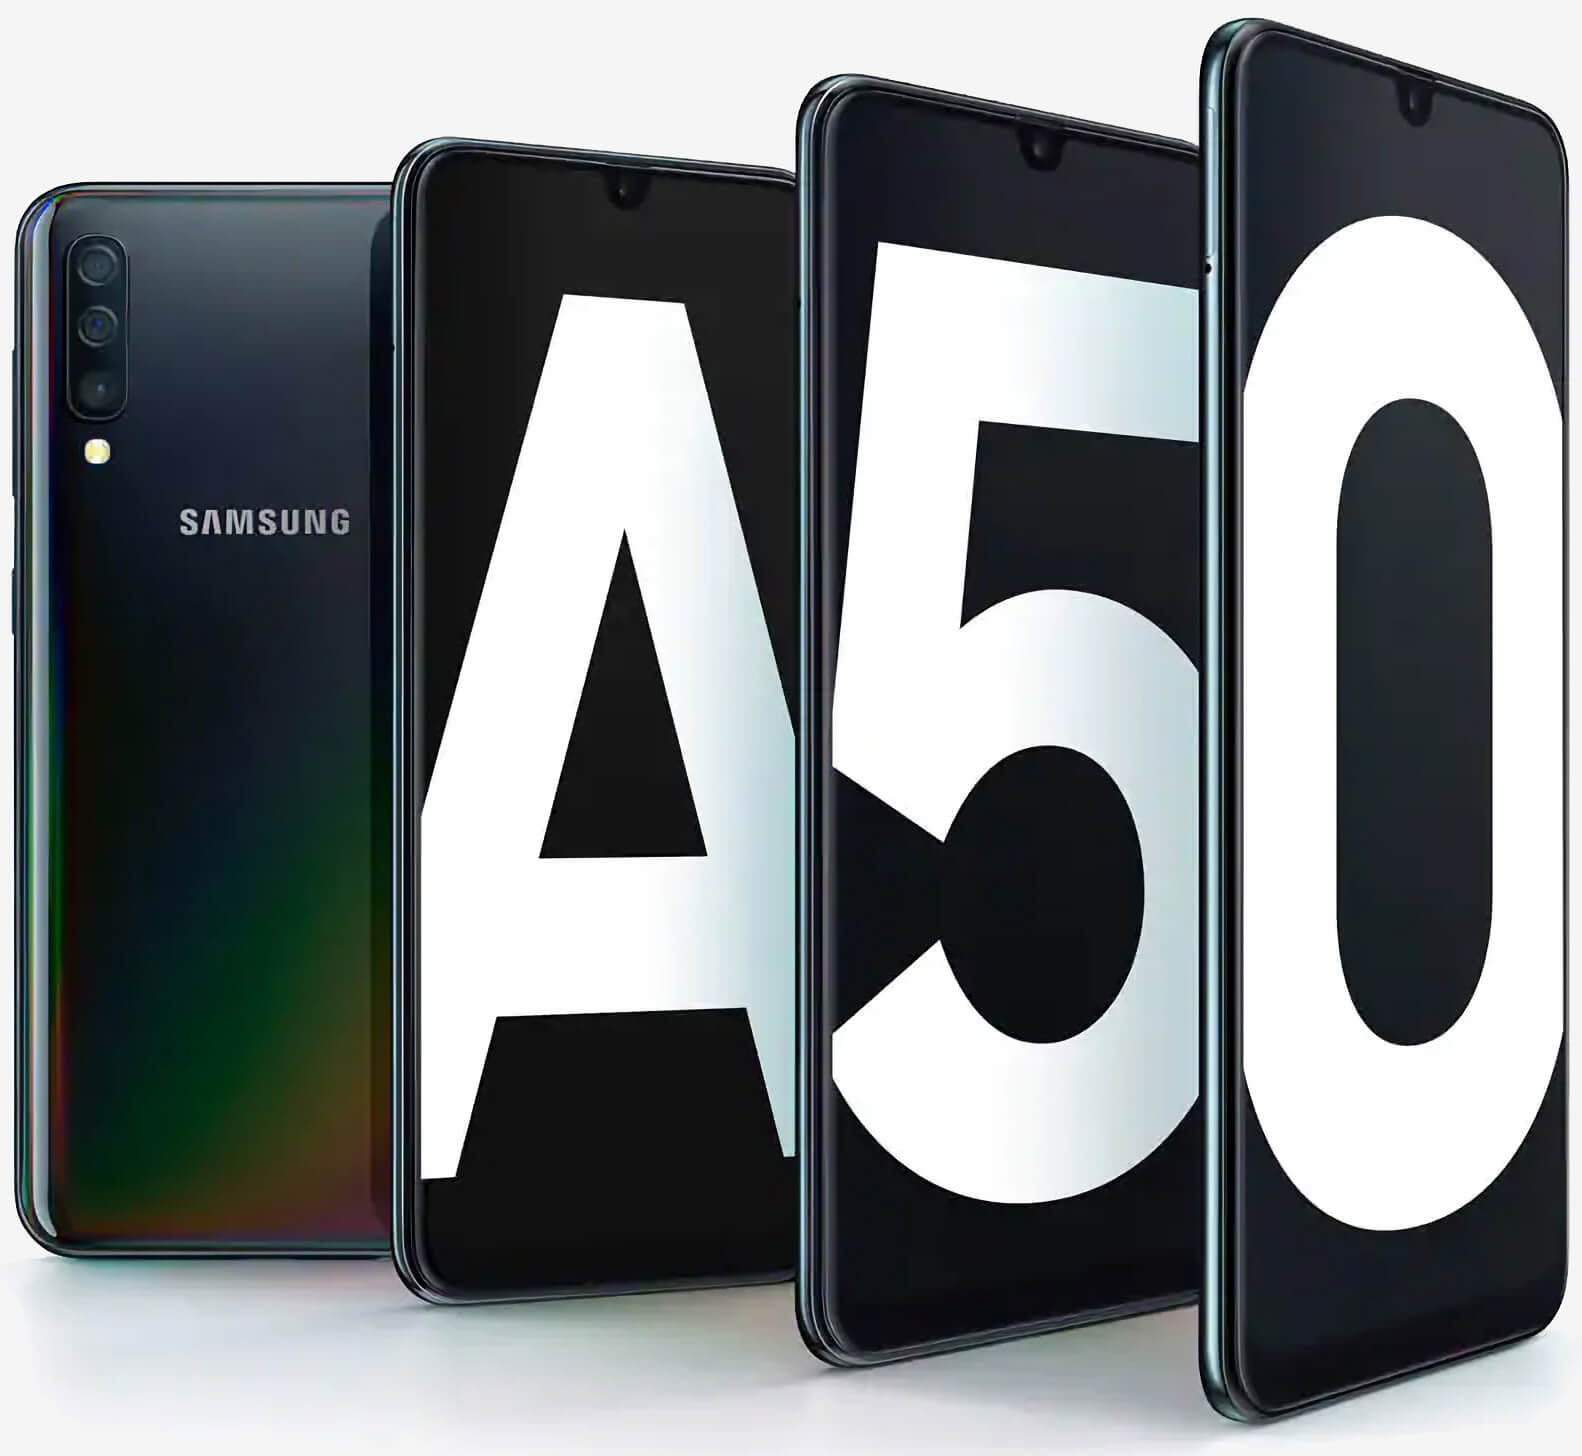 Samsung S 350 Galaxy A50 Smartphone Arrives In The Us On June 13